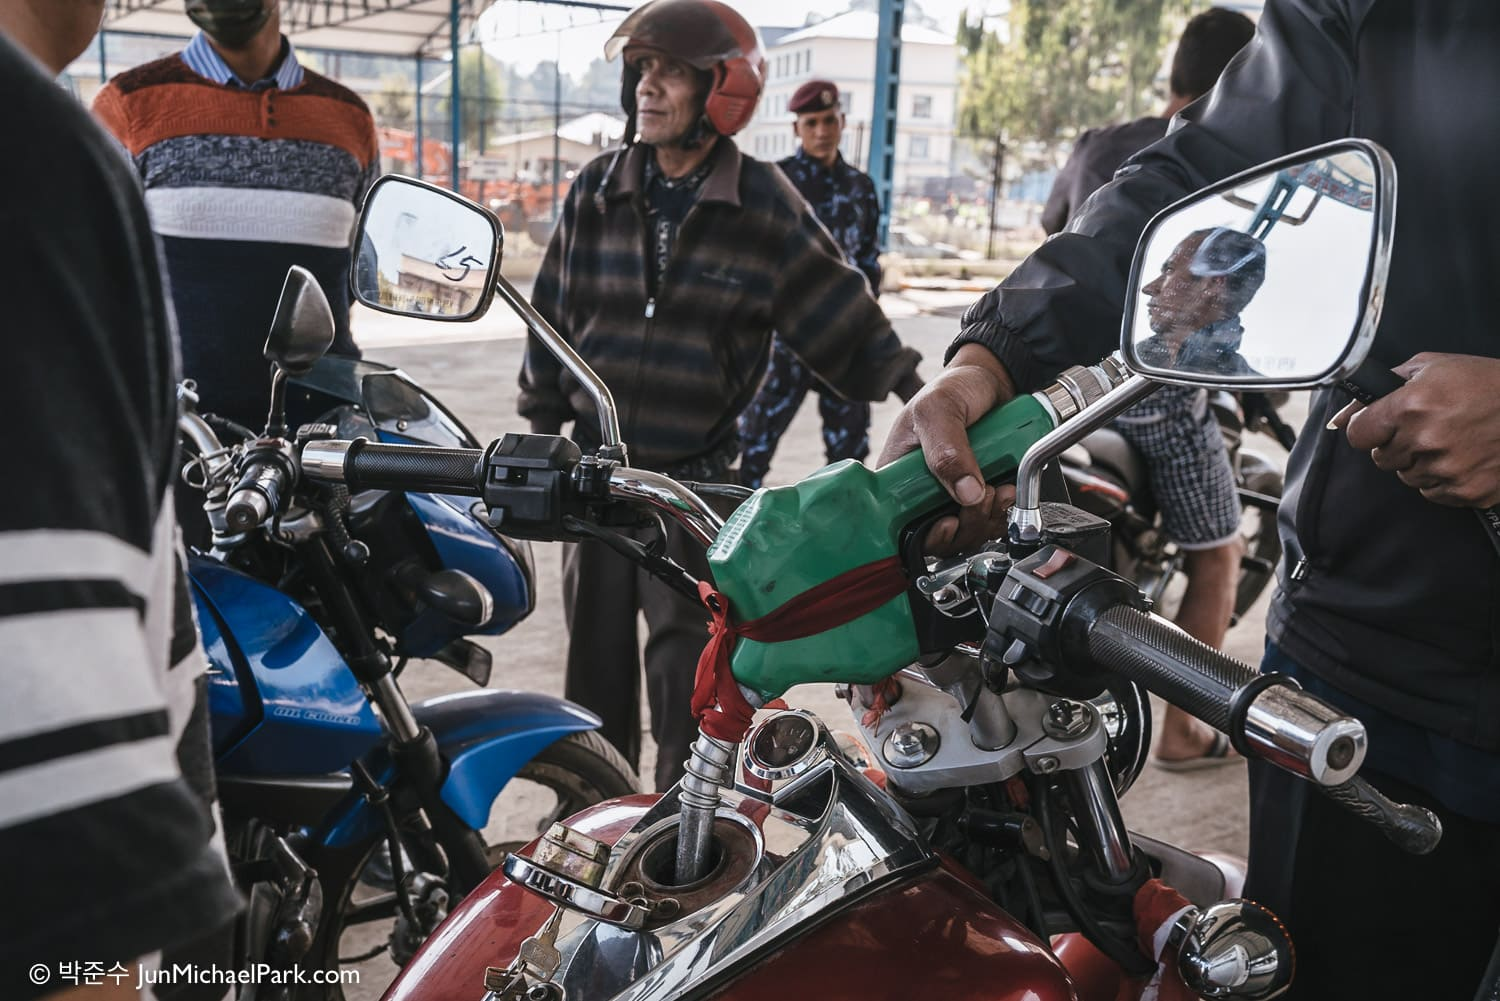 After 3 days of waiting, motorists refuel at Mahalaxmi Fuel Station, Kathmandu, Nepal, one of many state-run petrol stations. Due to the fuel shortage, petrol prices in the black market have spiked five times the normal price. 05.11.15